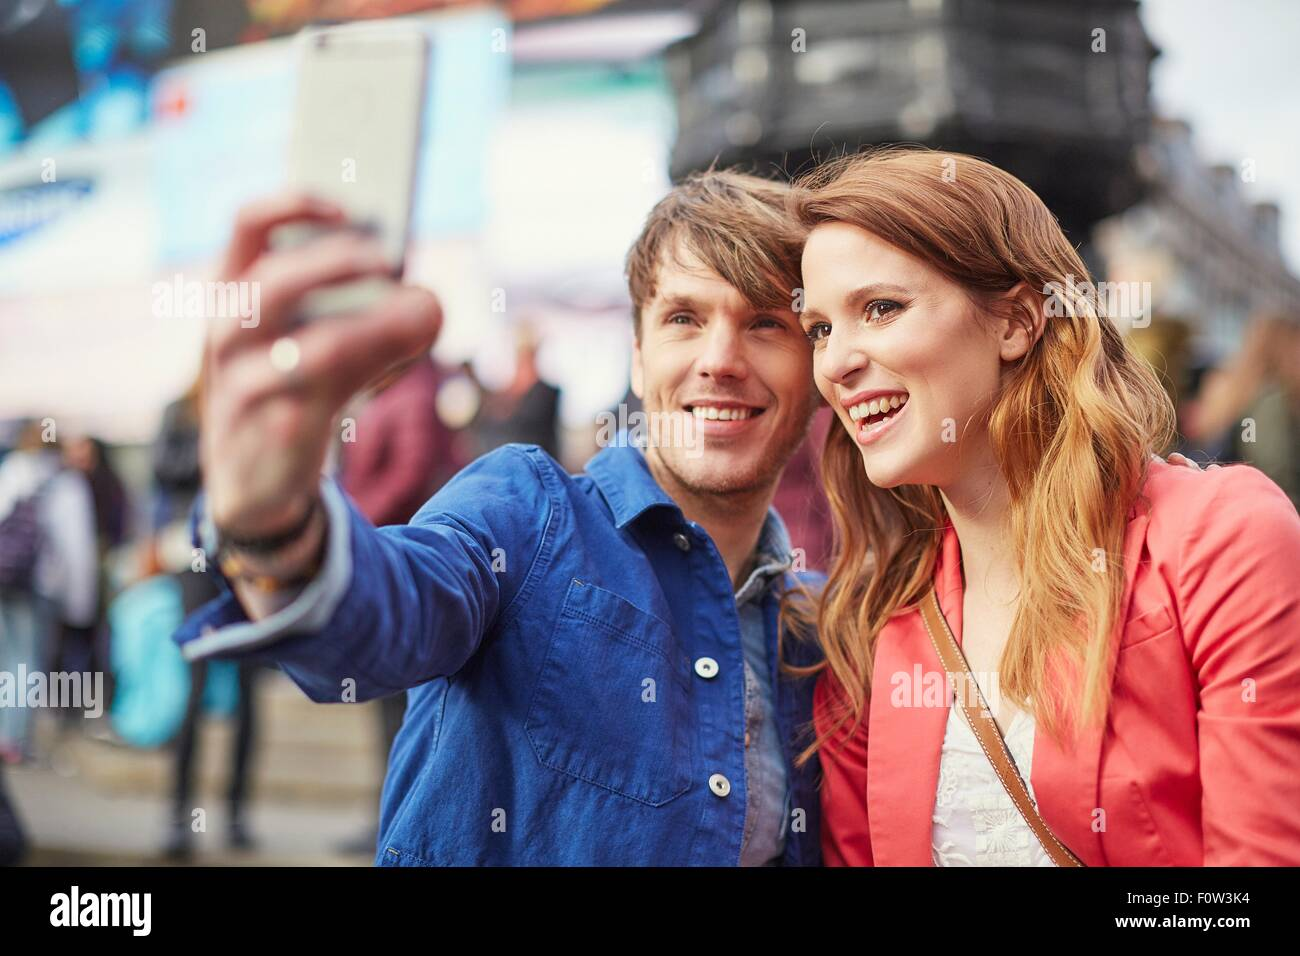 Tourist couple taking selfie on smartphone at Piccadilly Circus, London, UK - Stock Image